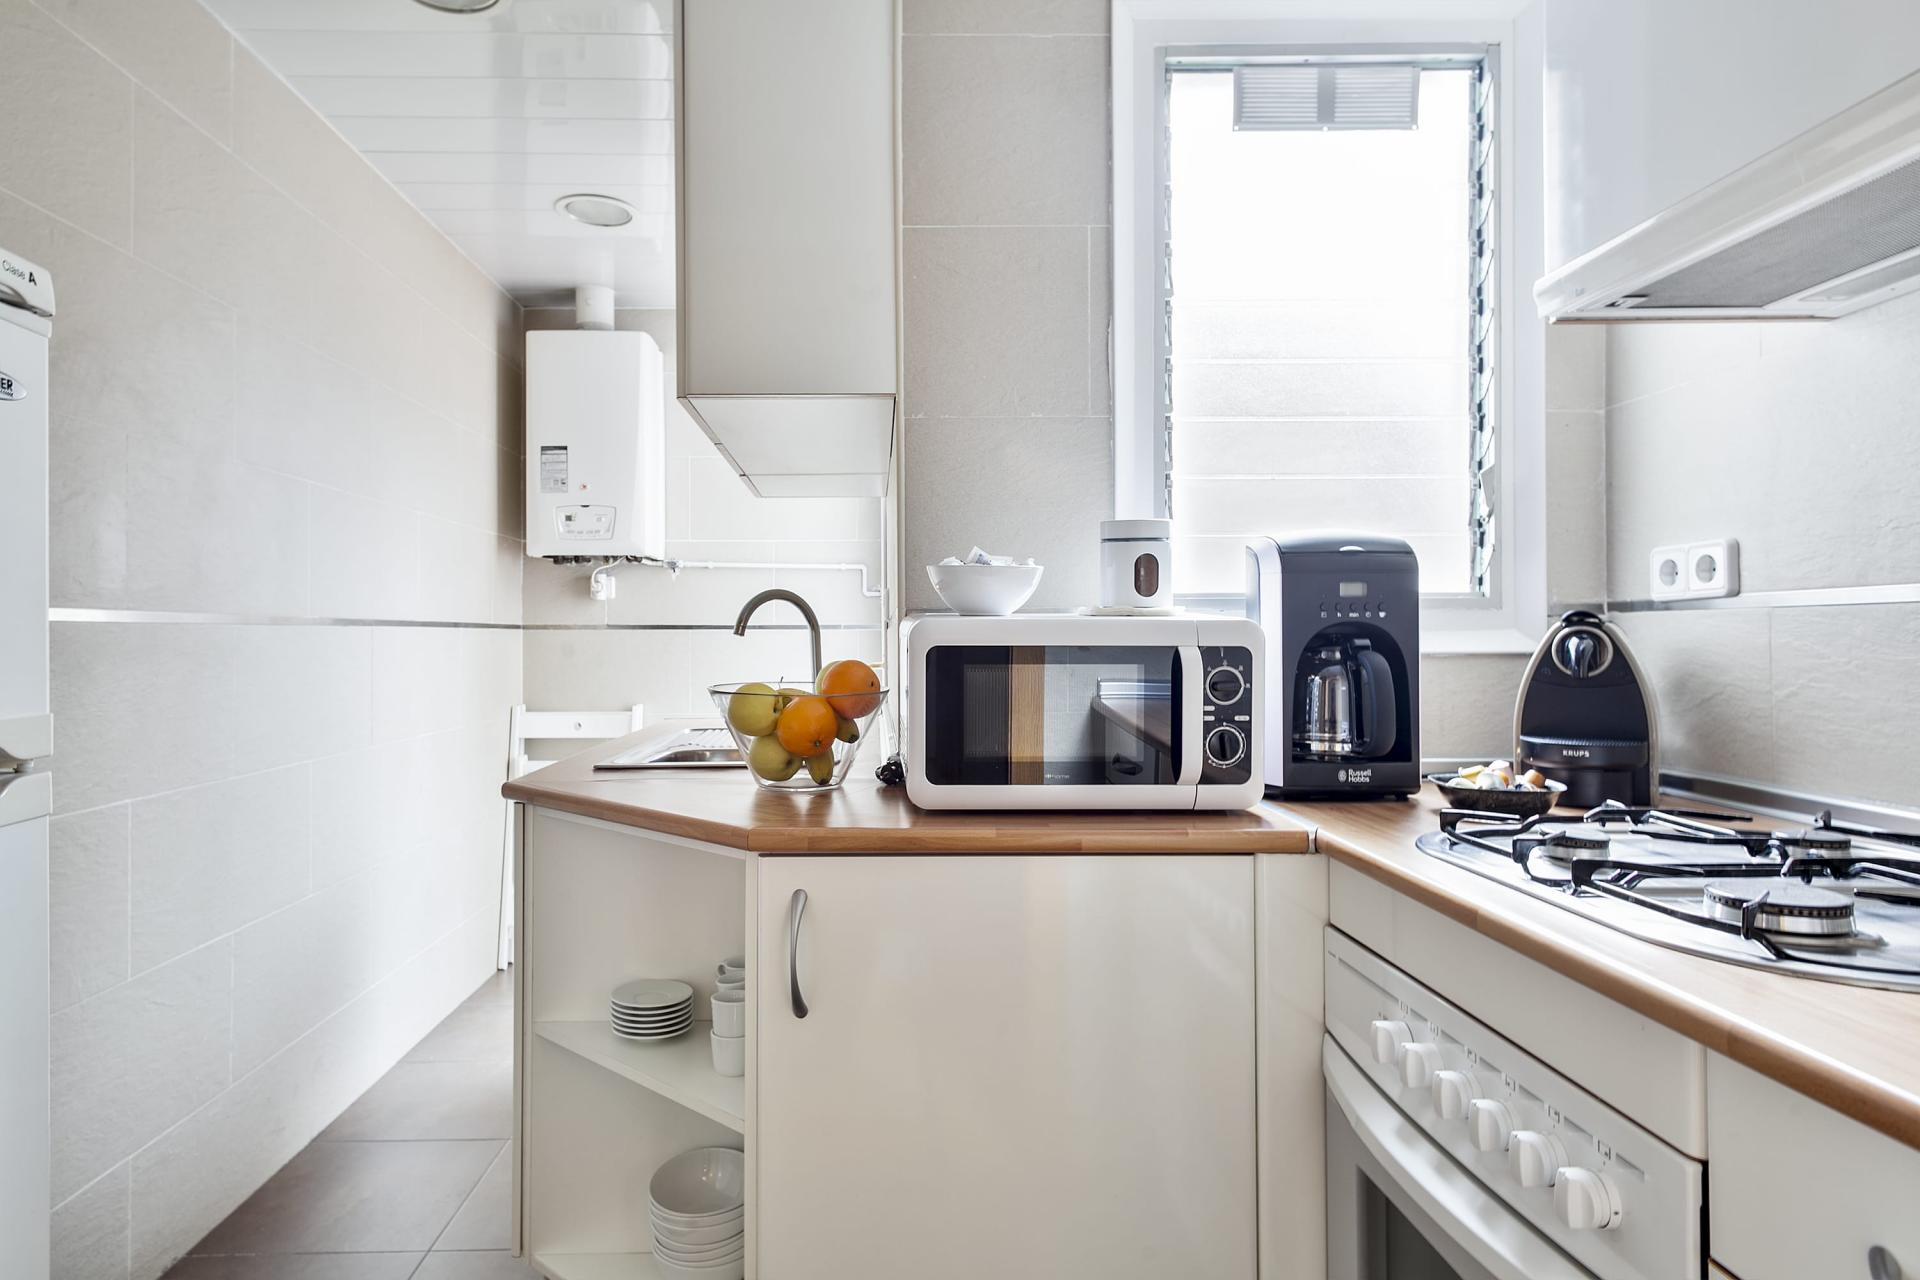 Microwave at Sunny Serviced Apartments, Eixample, Barcelona - Citybase Apartments